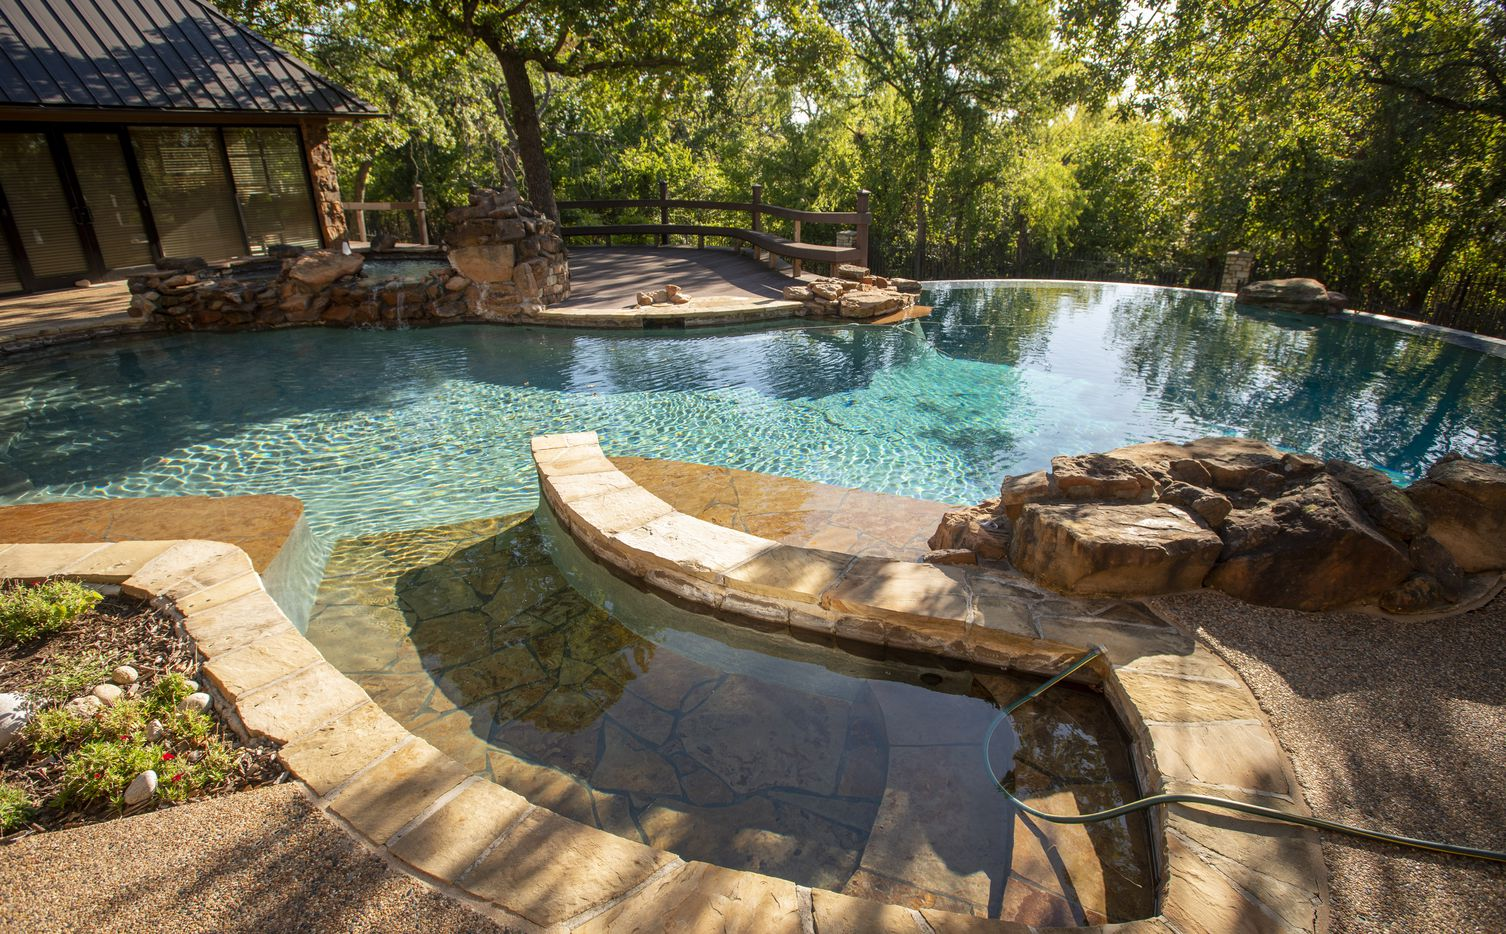 Pool at main house at 5101 Kensington Ct., in Flower Mound, Texas on August 19, 2020. (Robert W. Hart/Special Contributor)